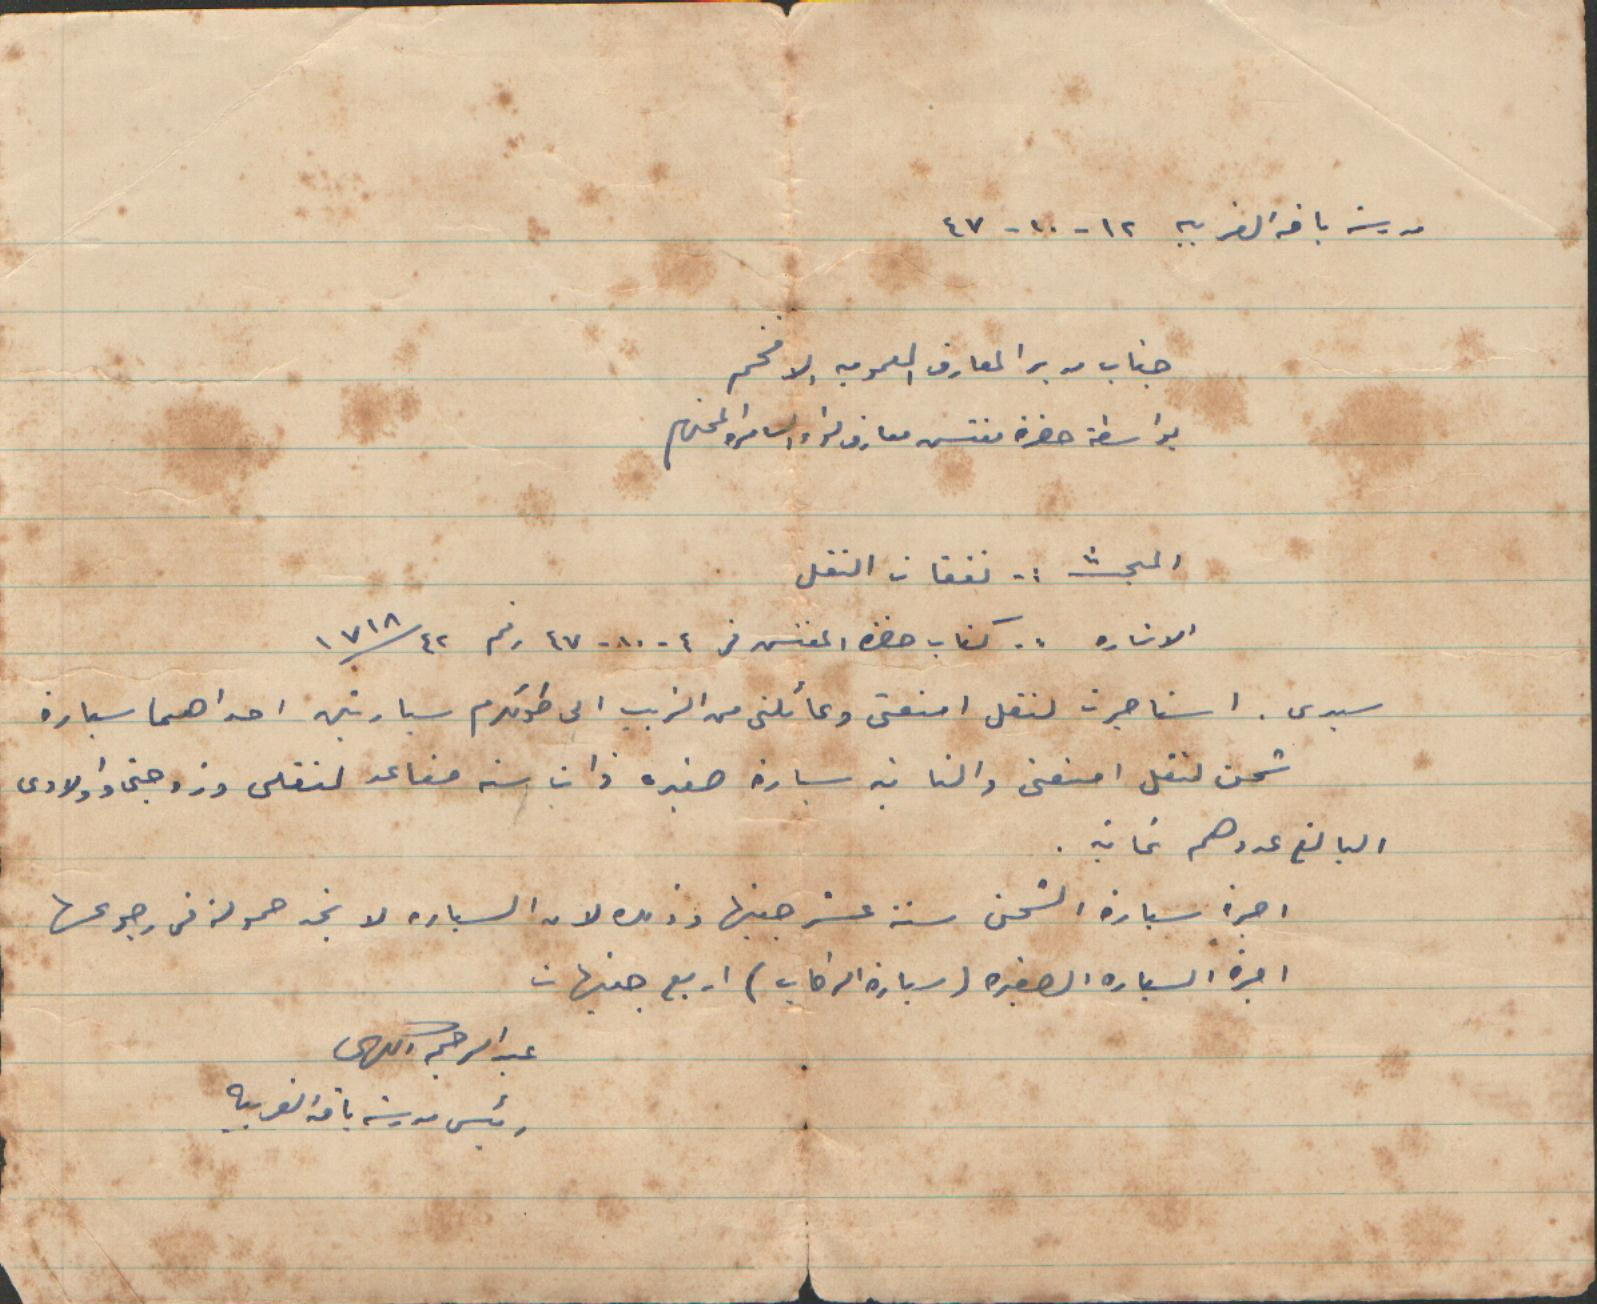 Tulkarm - طولكرم : First educational process moved from Zeeb, to Tulkarm 1947